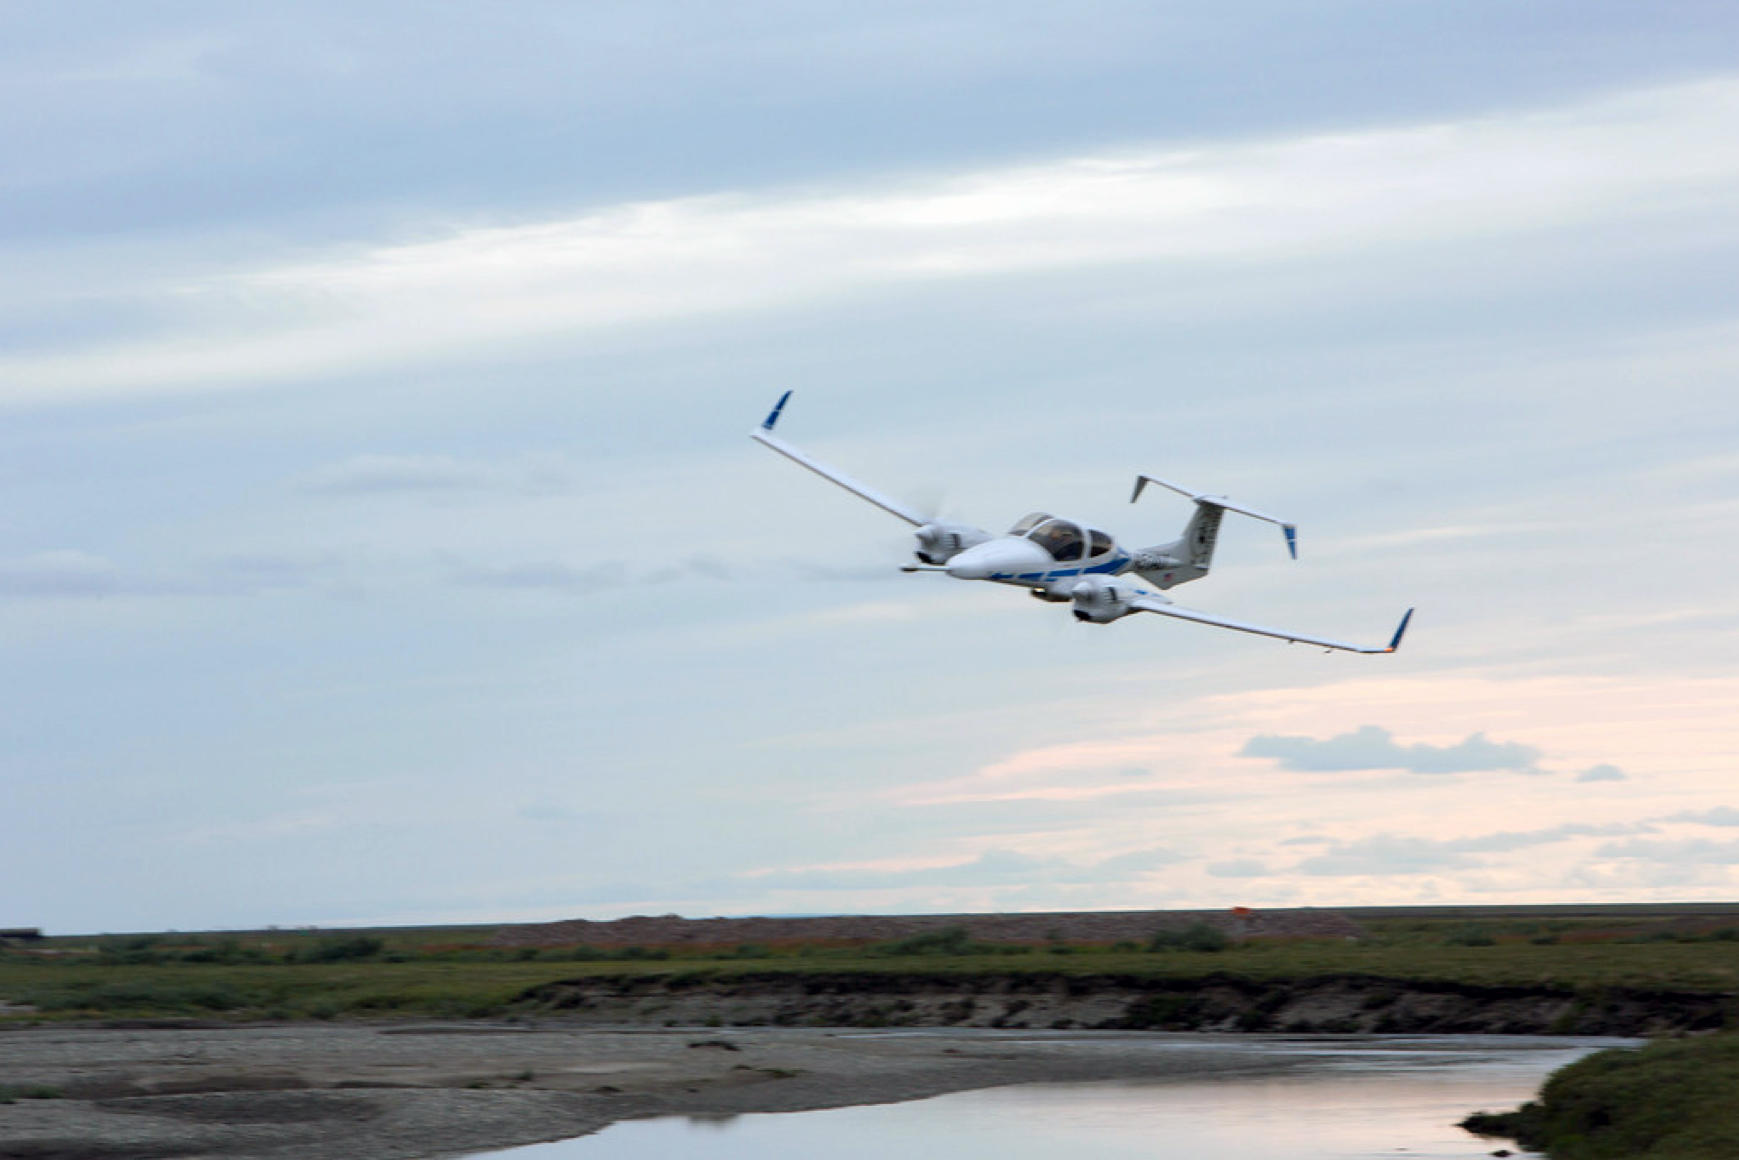 Anderson's airborne eddy-covariance system flies over melting permafrost in Alaska